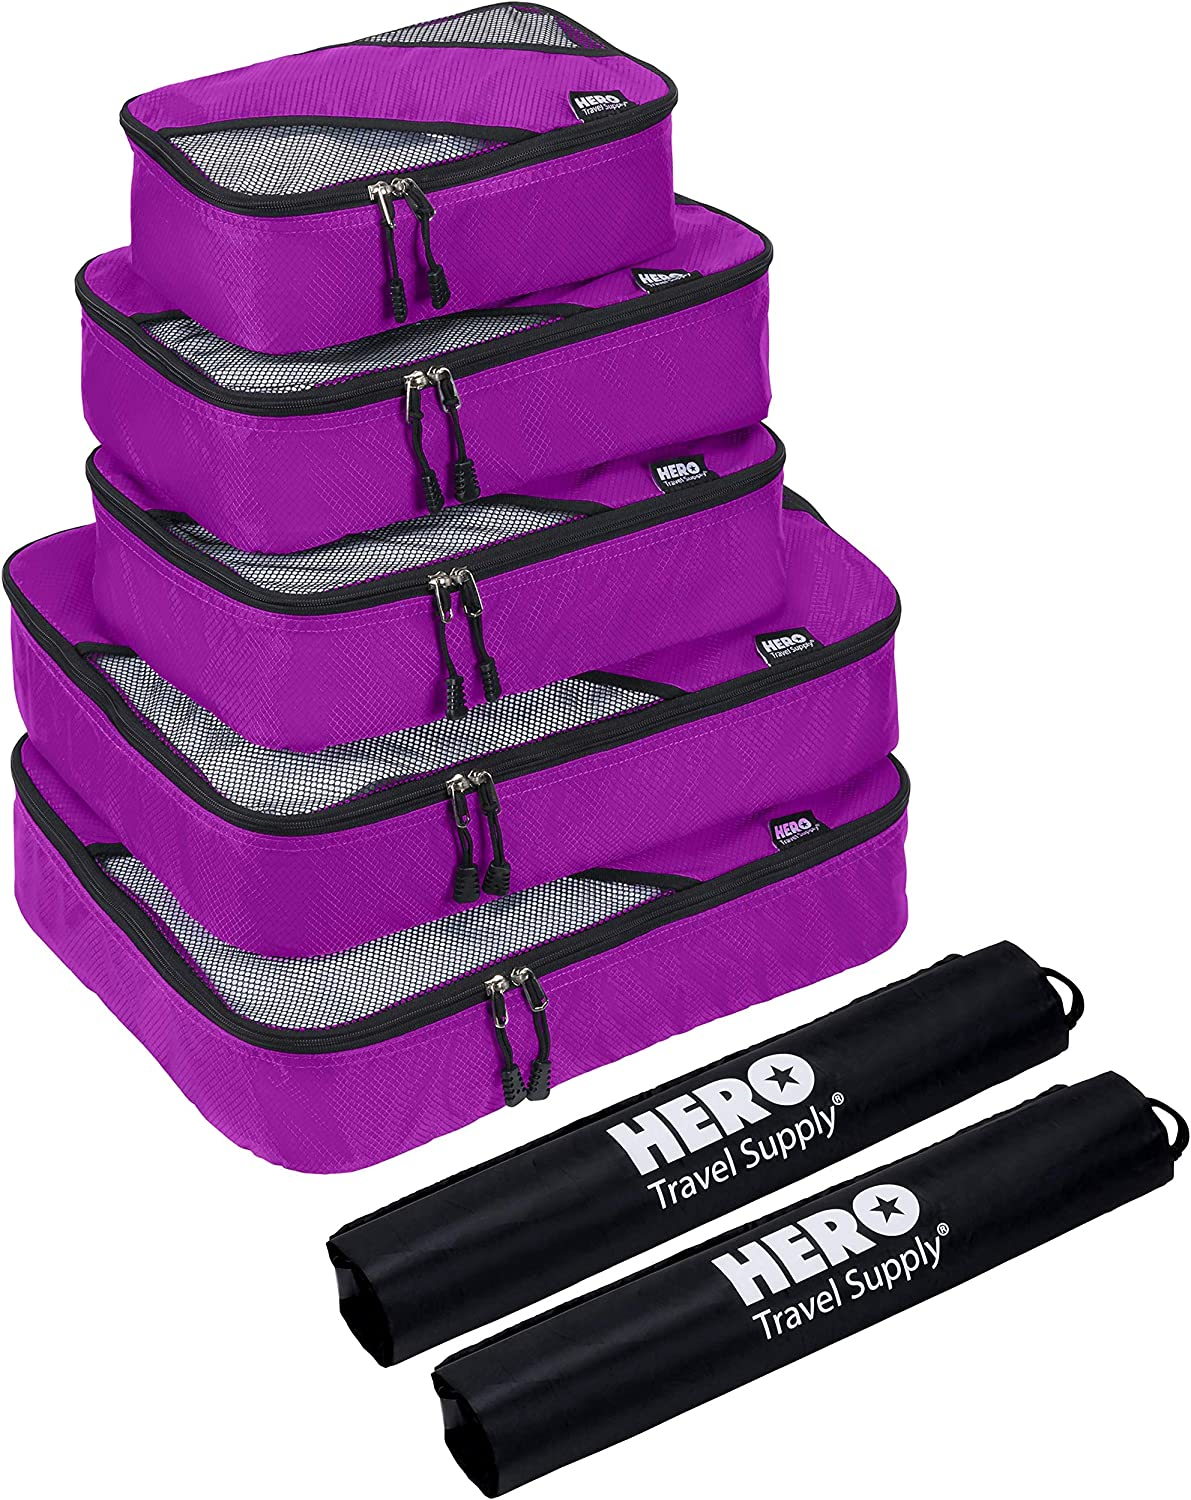 HERO Packing Cubes (5 Set) – Travel Organizers with 2 Bonus Laundry Bags